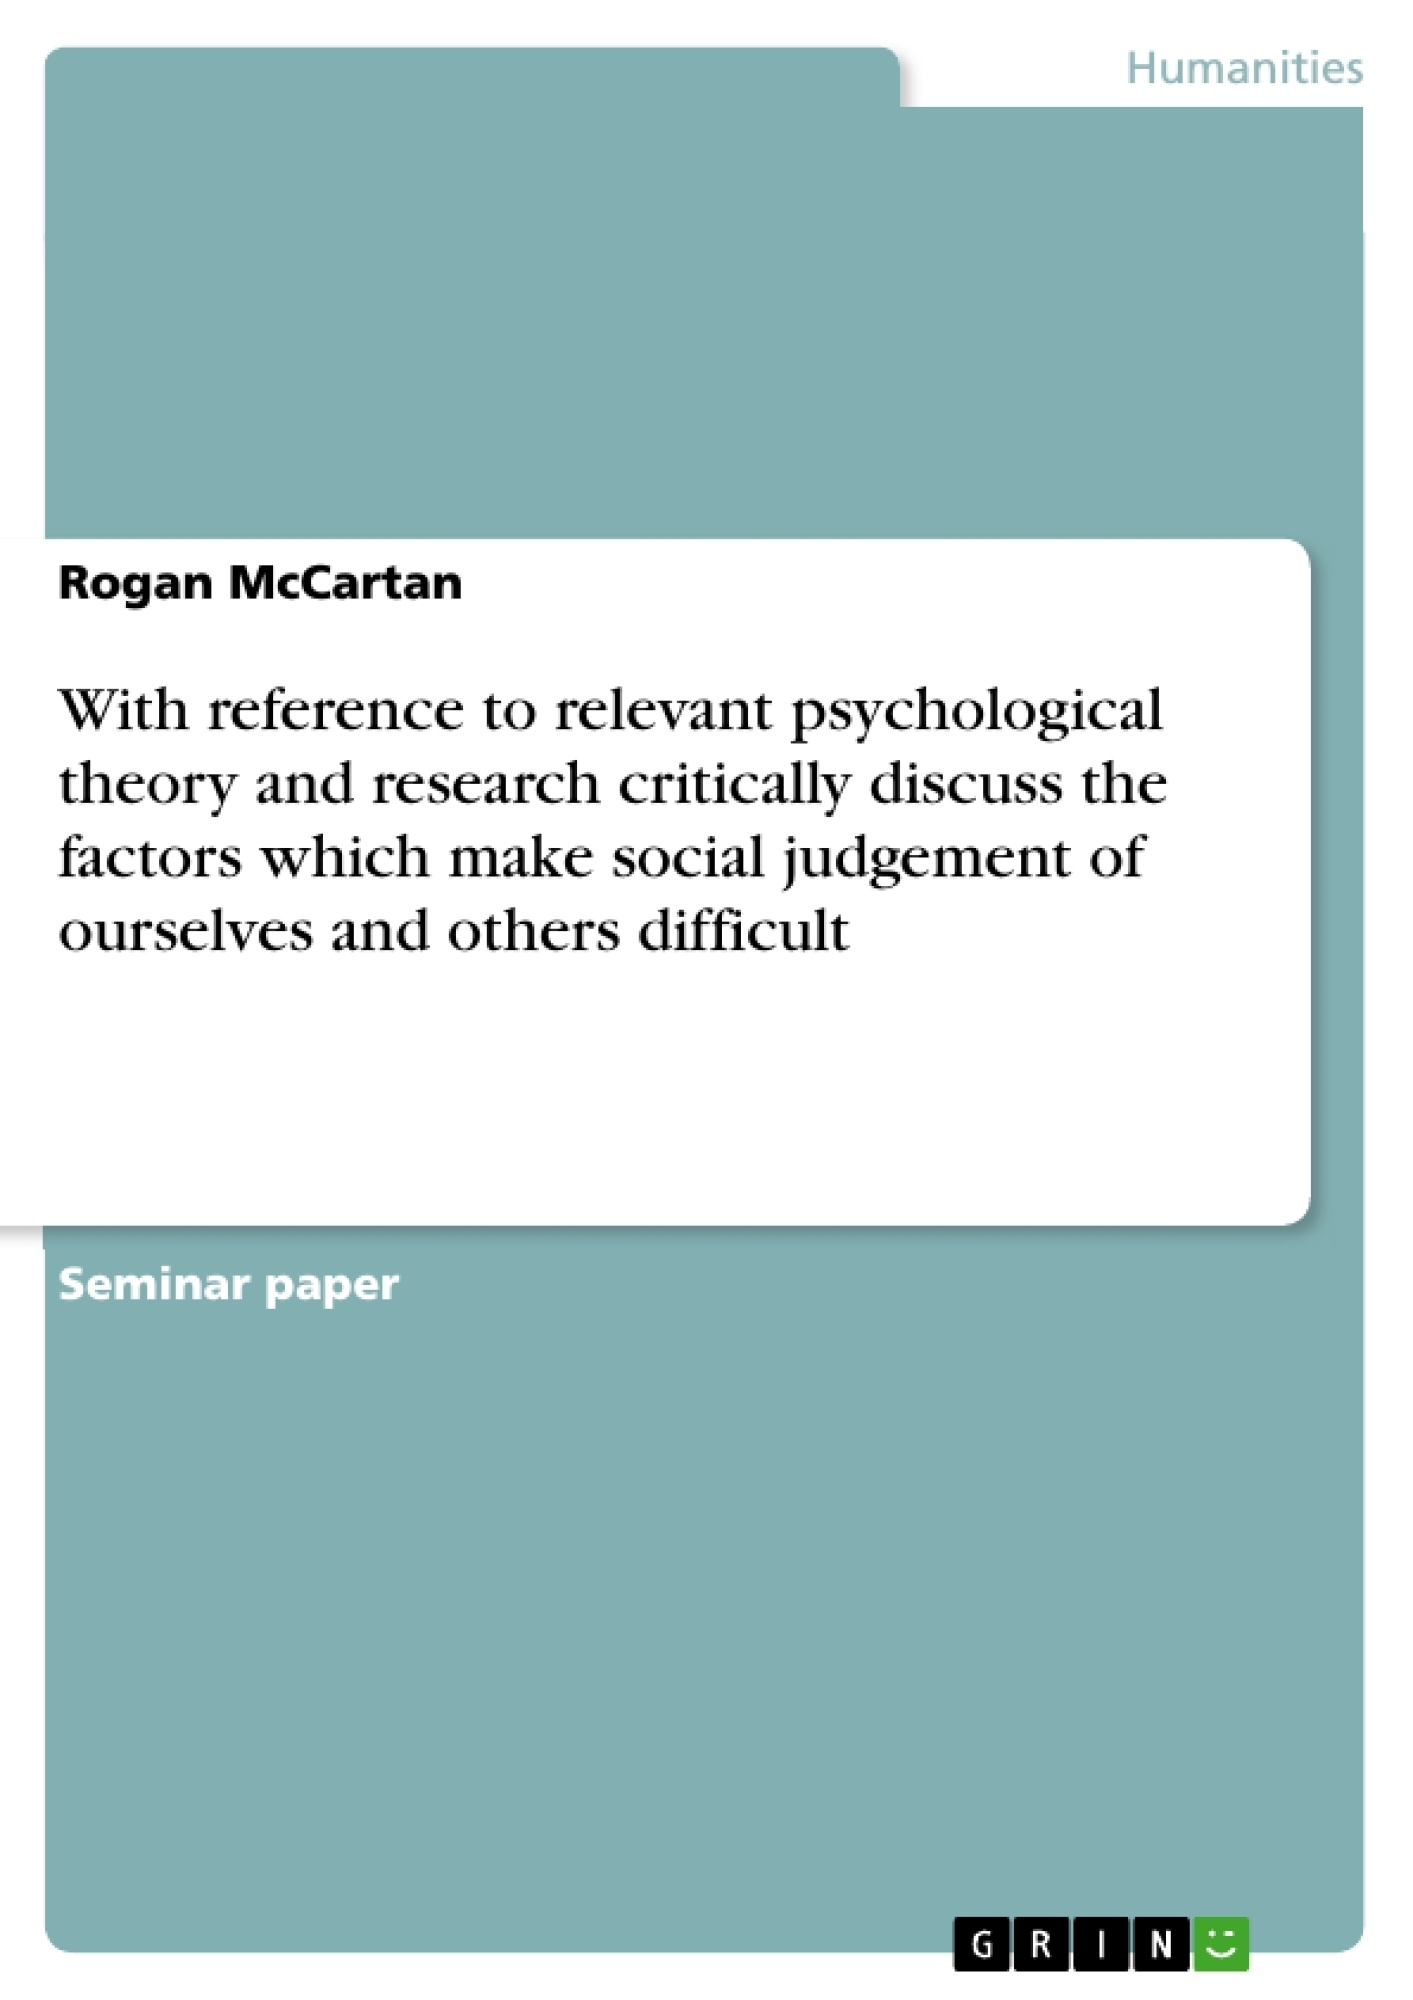 Title: With reference to relevant psychological theory and research critically discuss the factors which make social judgement of ourselves and others difficult